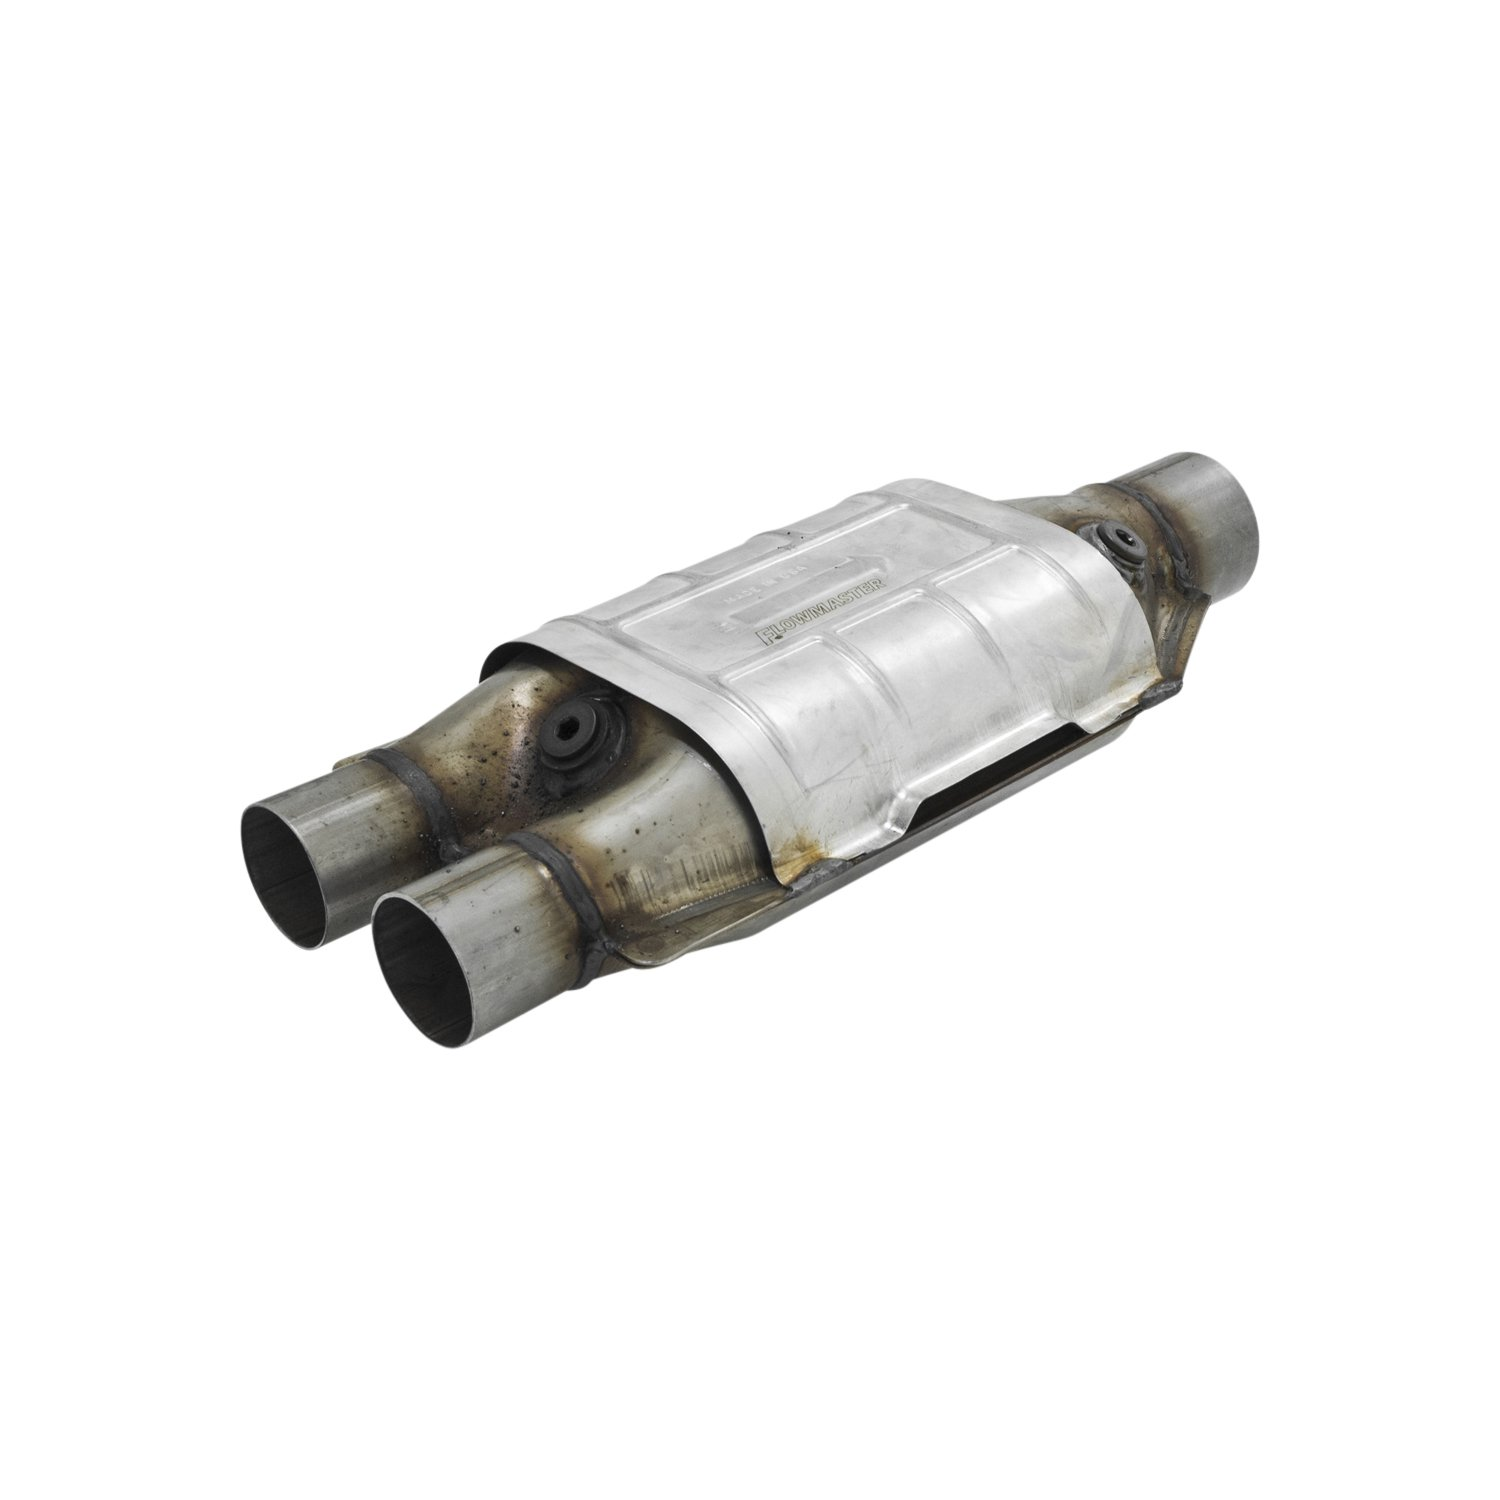 Ford F150 Catalytic Converters Exhaust Systems Guide 2004 F 150 Converter Flowmaster 2824220